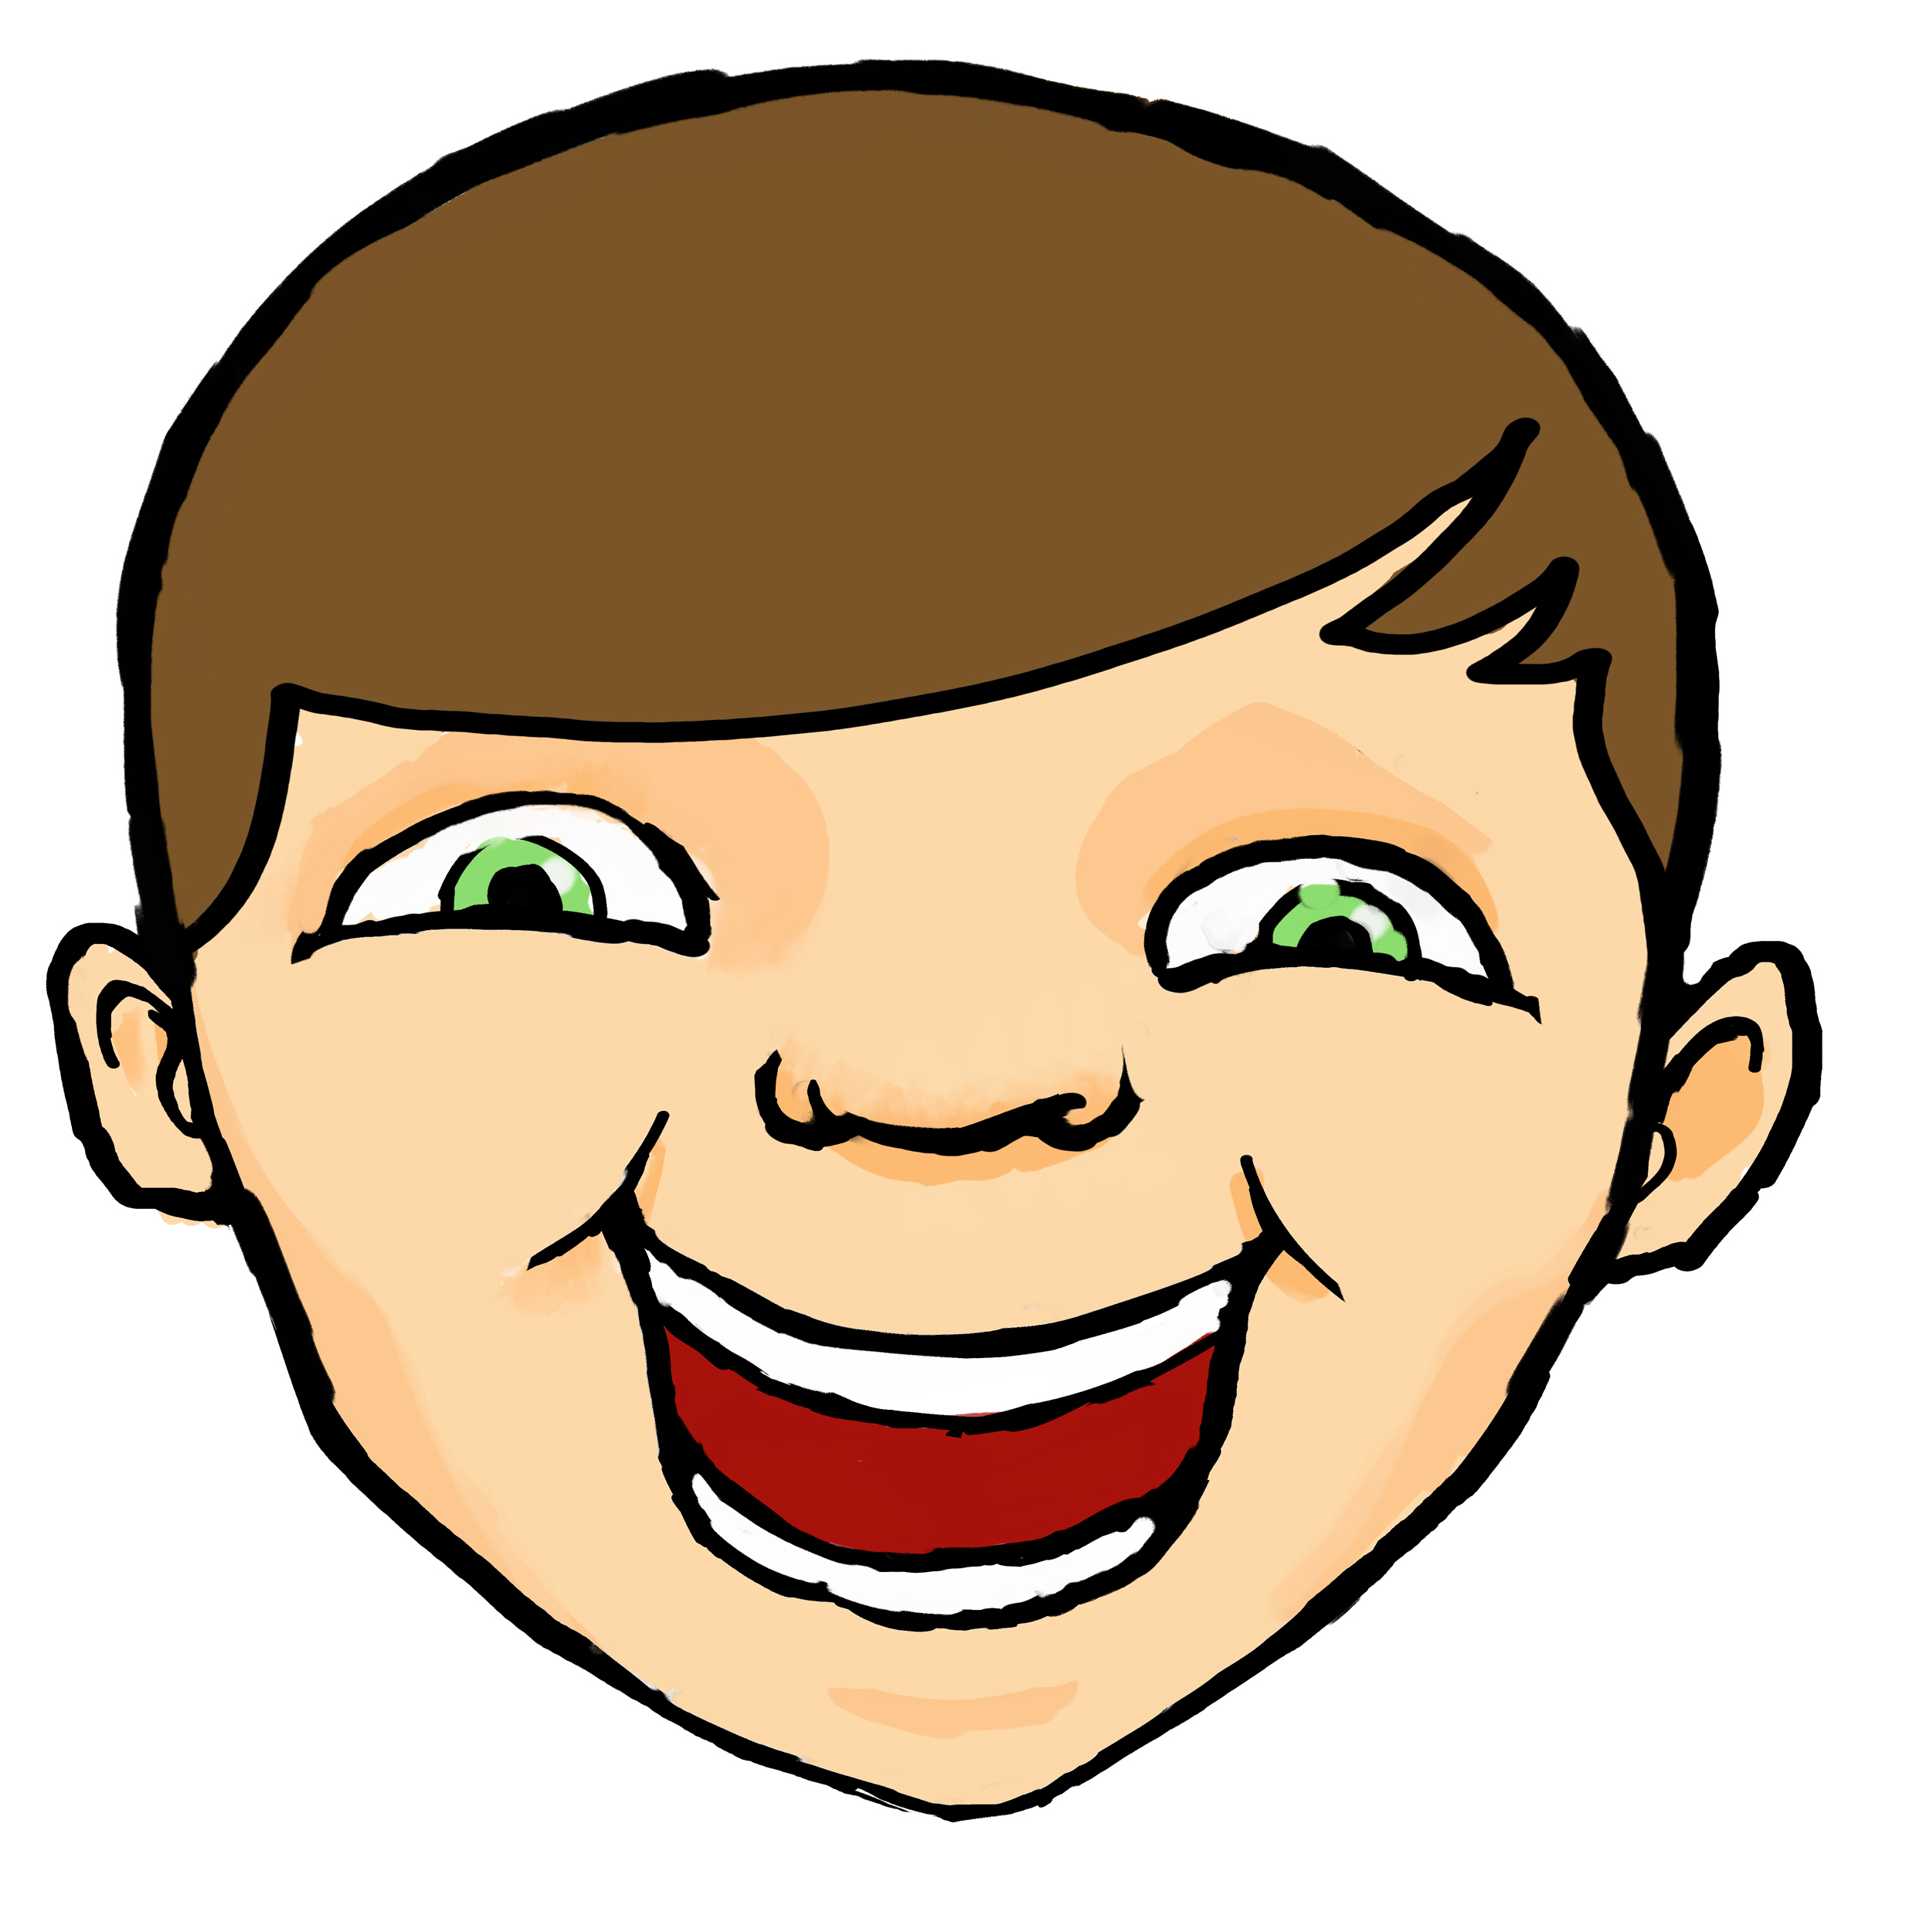 Happy kid face clipart graphic free download Free Face Cliparts, Download Free Clip Art, Free Clip Art on Clipart ... graphic free download